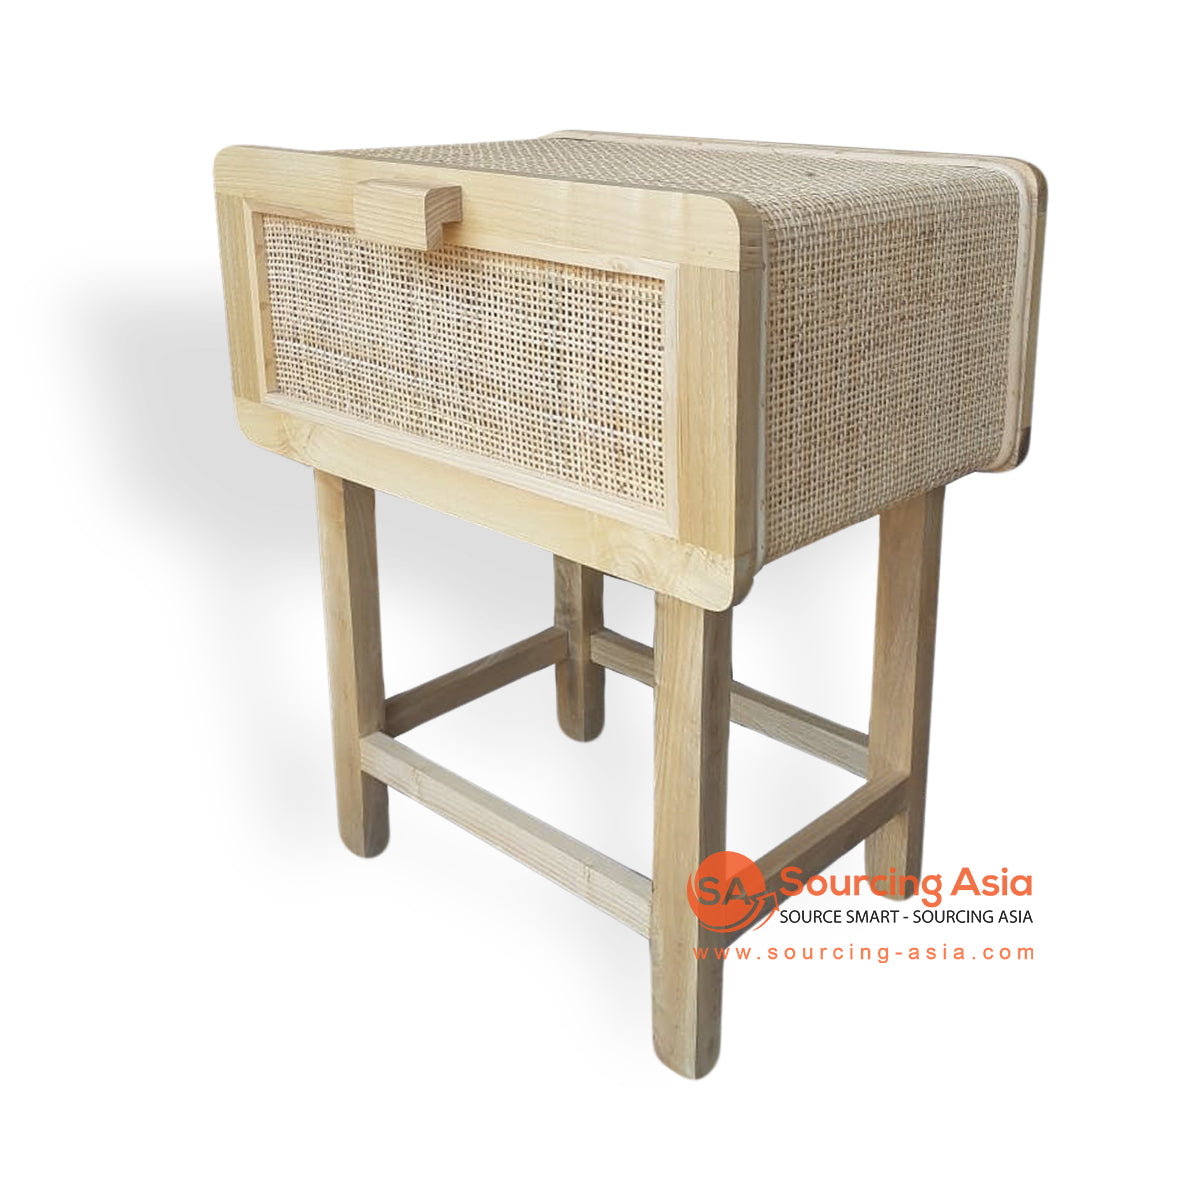 BNT201 BEDSIDE TABLE RATTAN